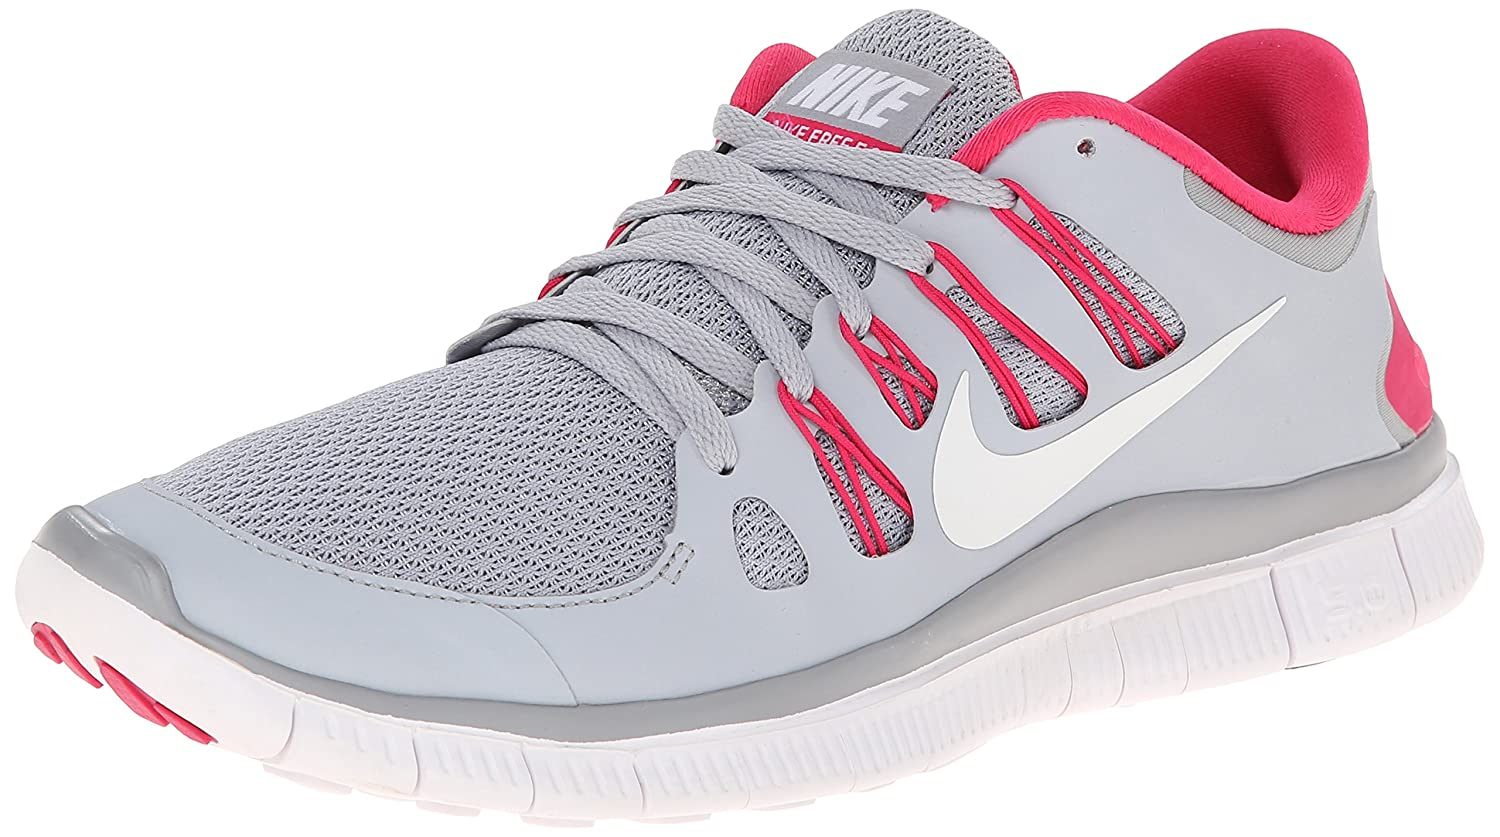 Nike Lady Free 5.0+ Running Shoes B0178LW376 7 B(M) US|Wolf Grey/Pink Force/White